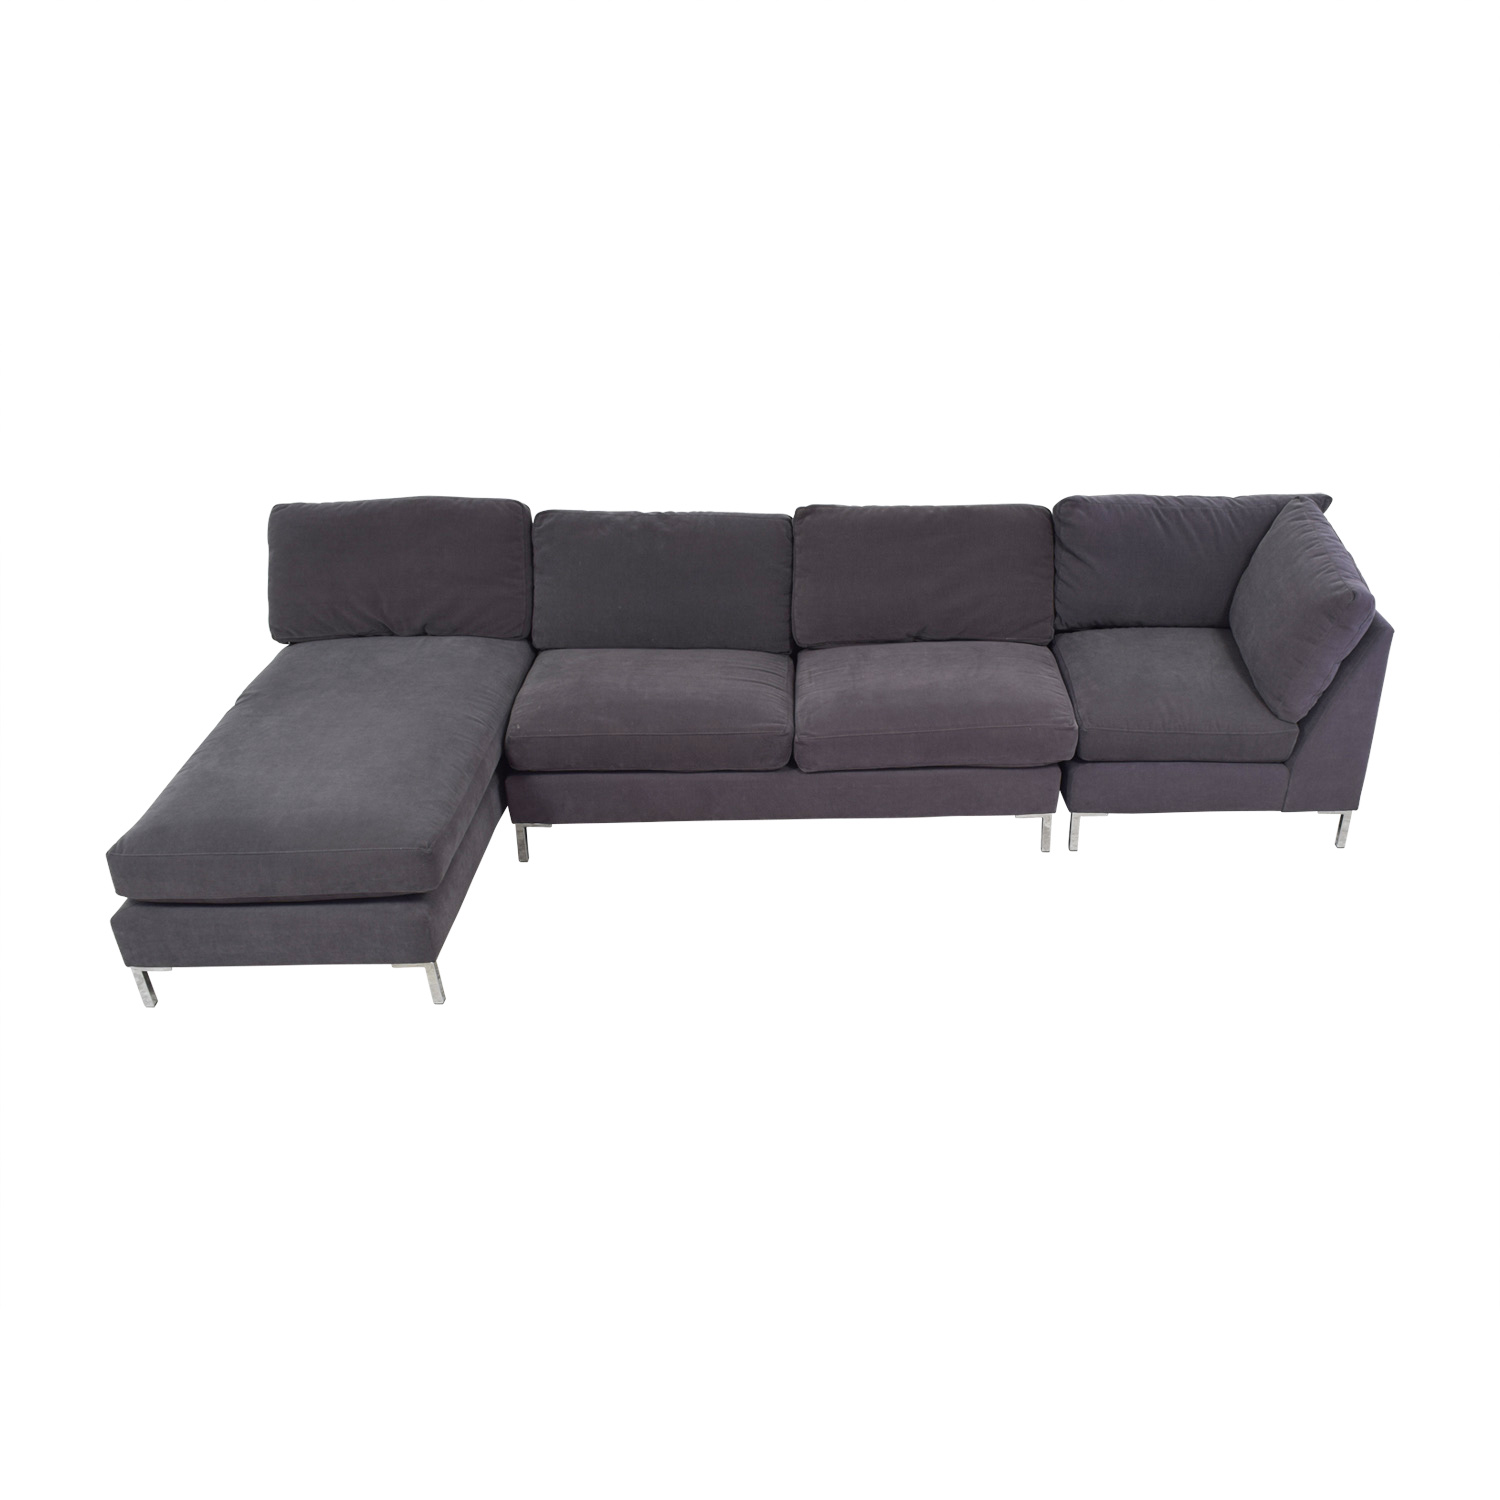 CB2 Charcoal Grey Chaise Sectional sale